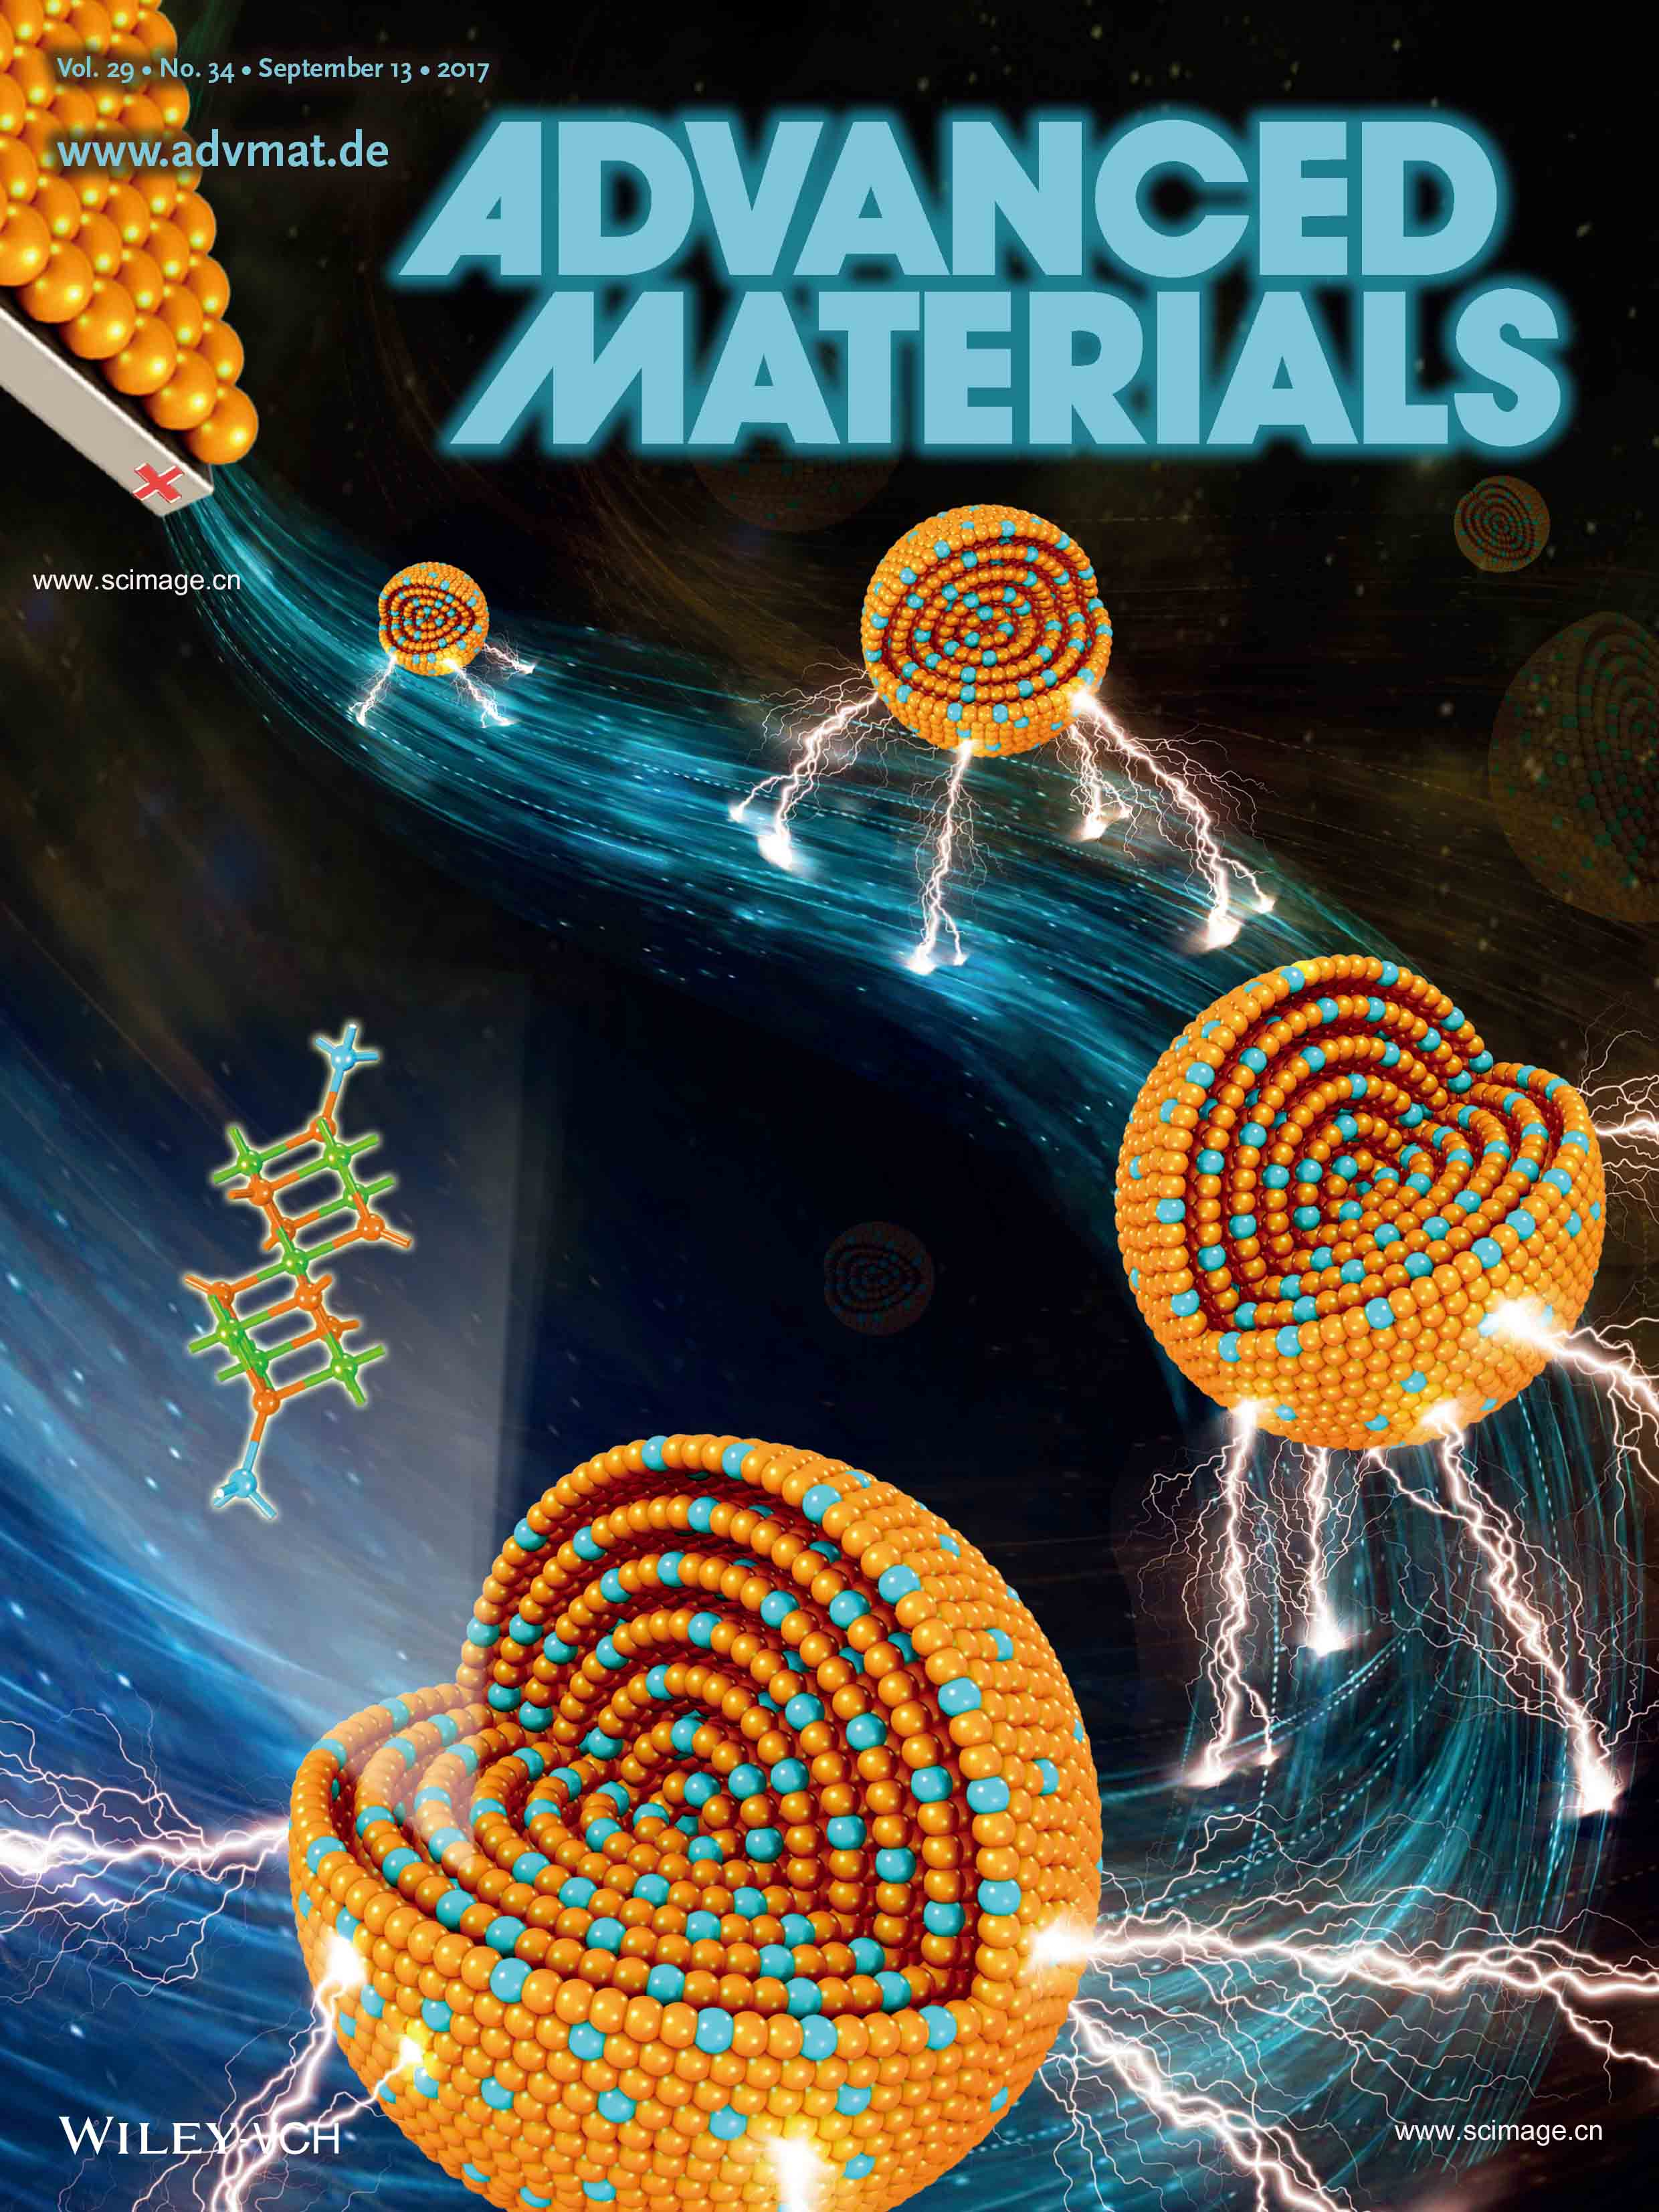 Rechargeable Batteries: Formation of Septuple-Shelled (Co2/3Mn1/3)(Co5/6Mn1/6)2O4 Hollow Spheres as Electrode Material for Alkaline Rechargeable Battery